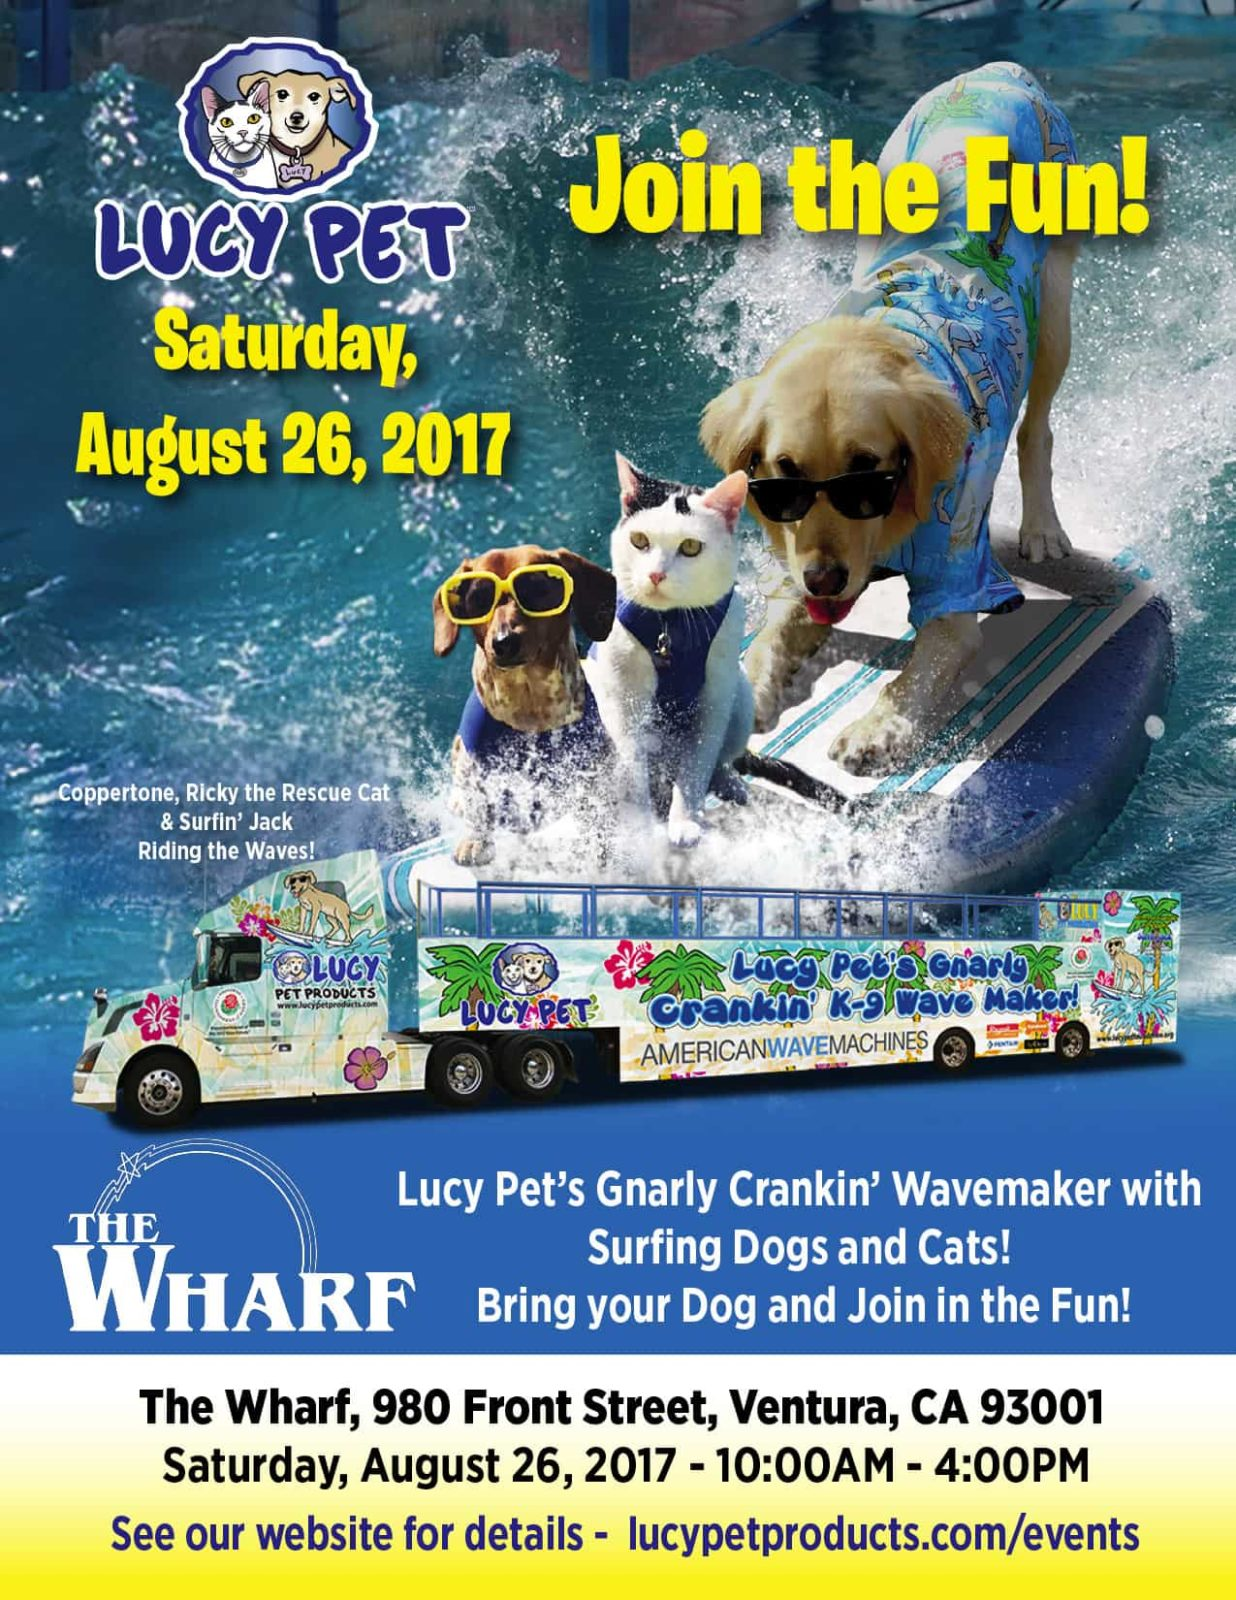 The Wharf Lucy Pet Products